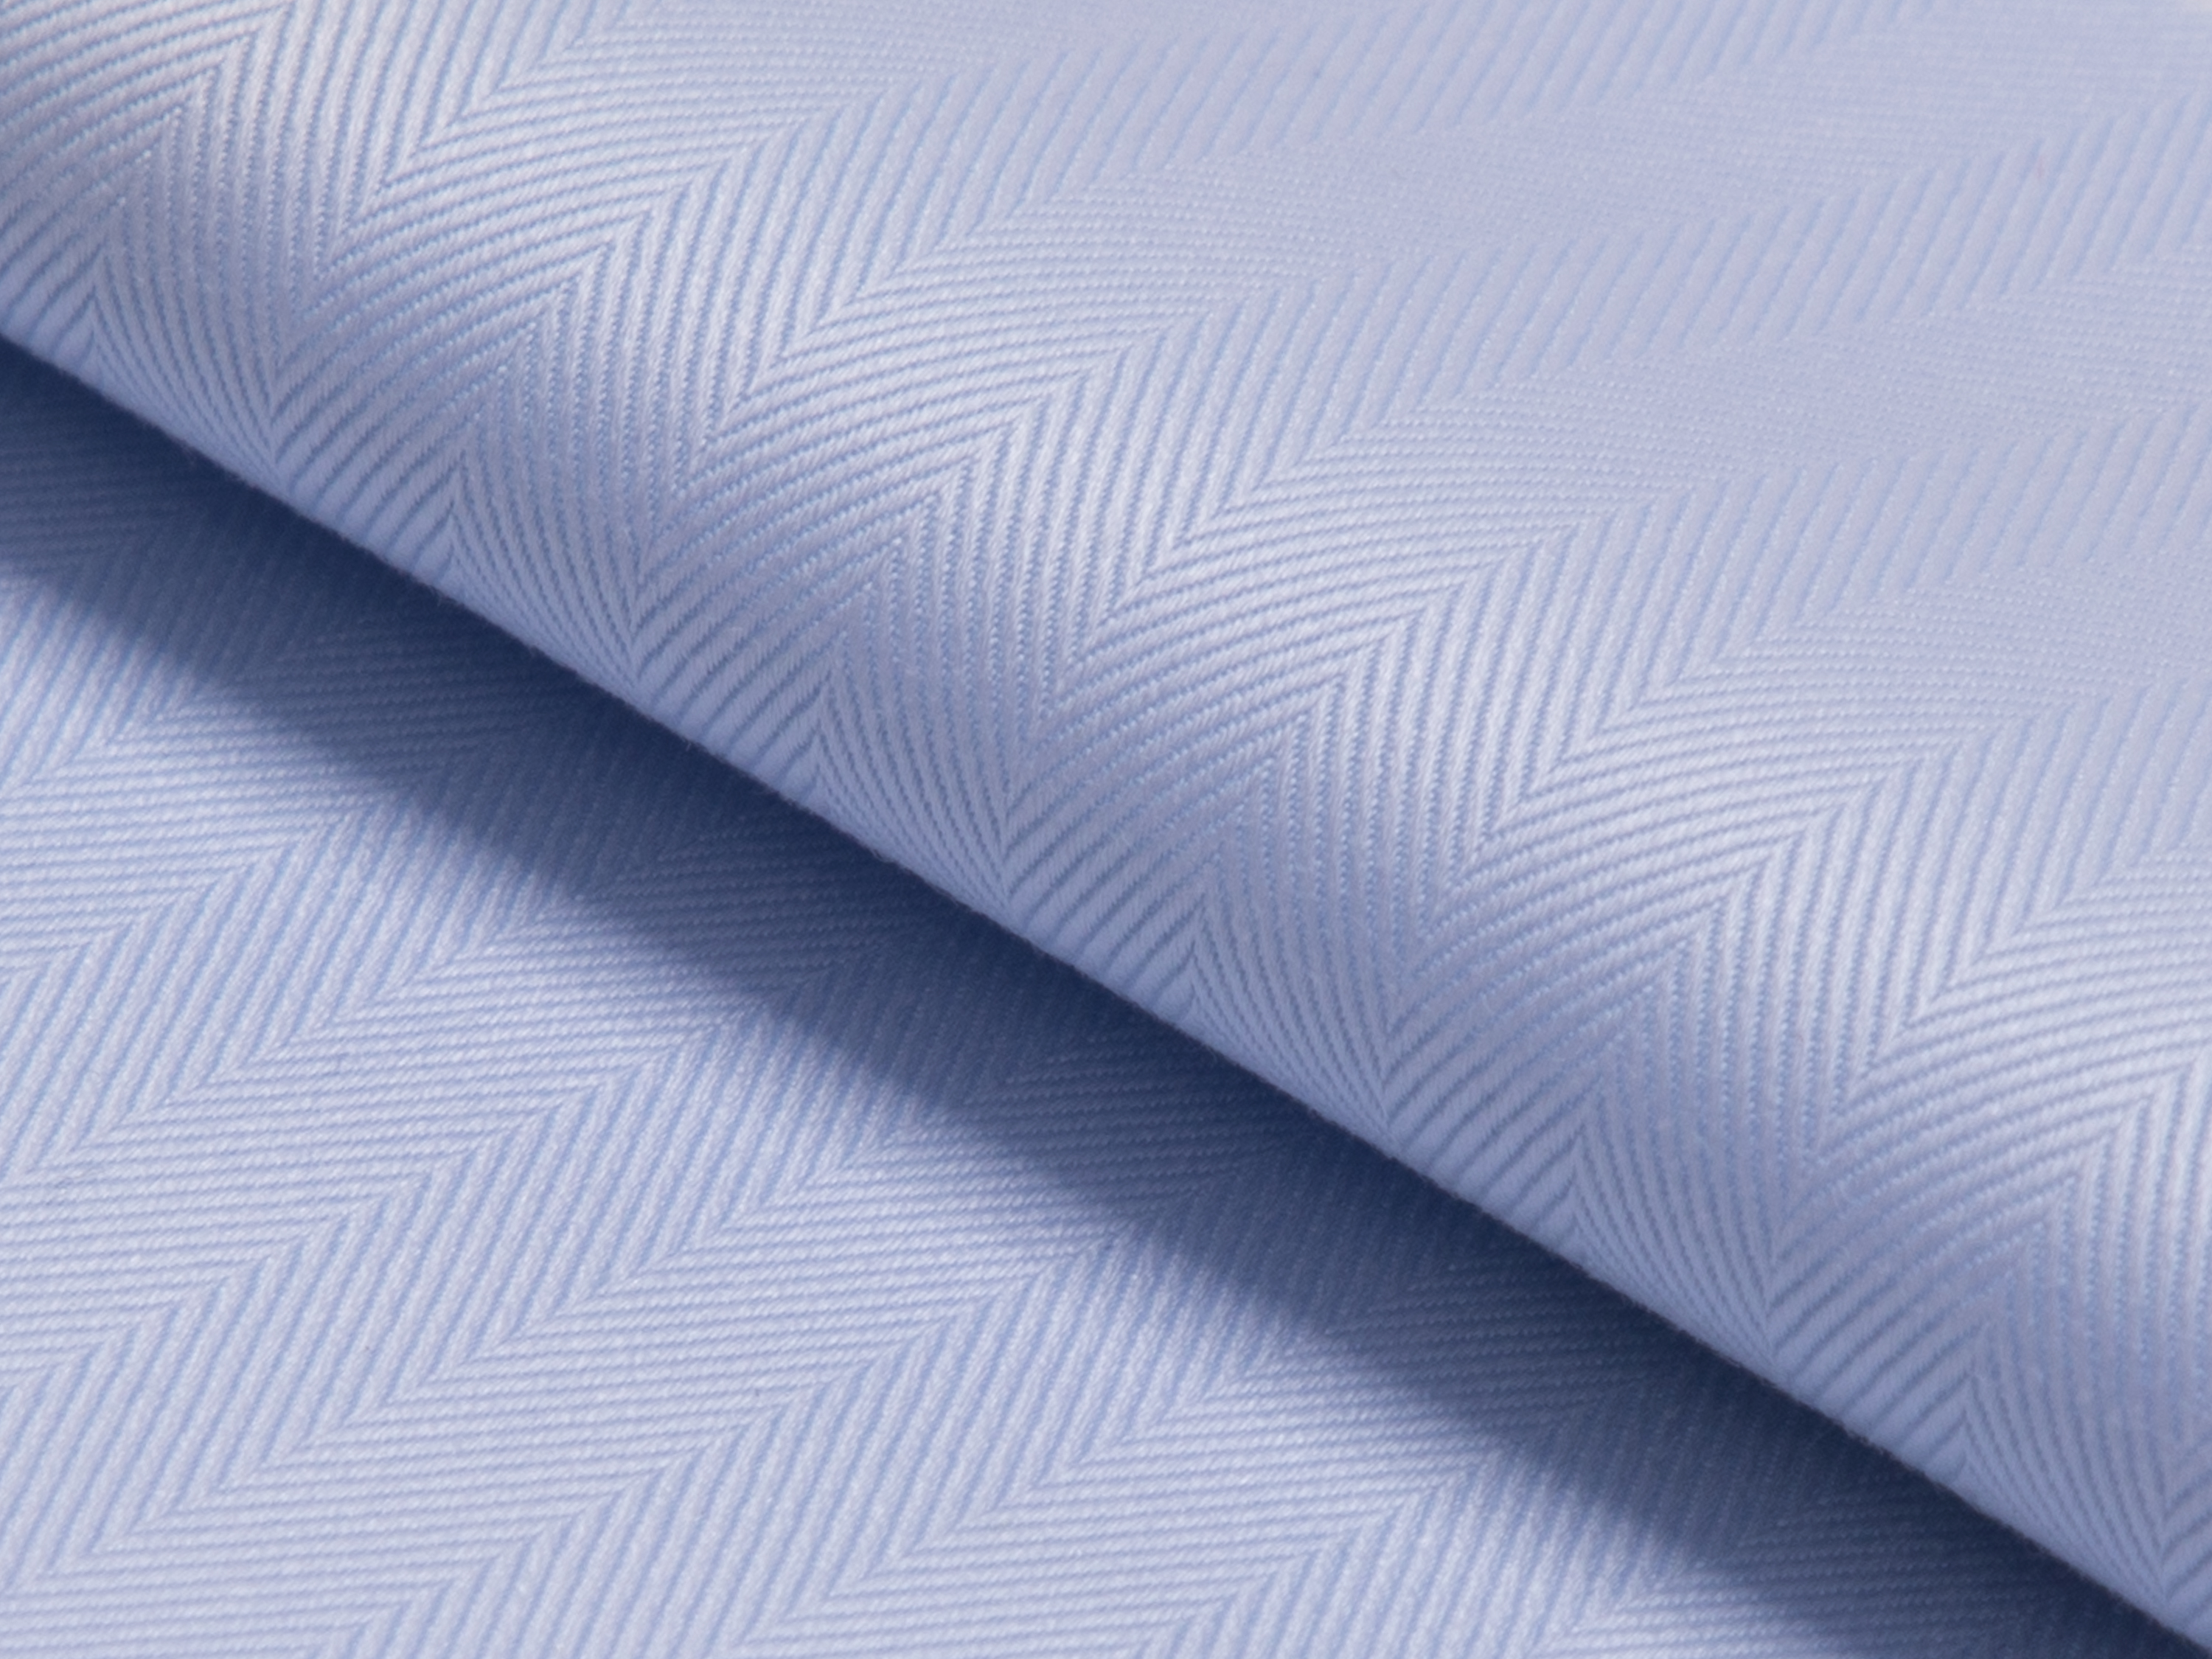 Buy tailor made shirts online - MAYFAIR (NEW) - Herringbone Light Blue